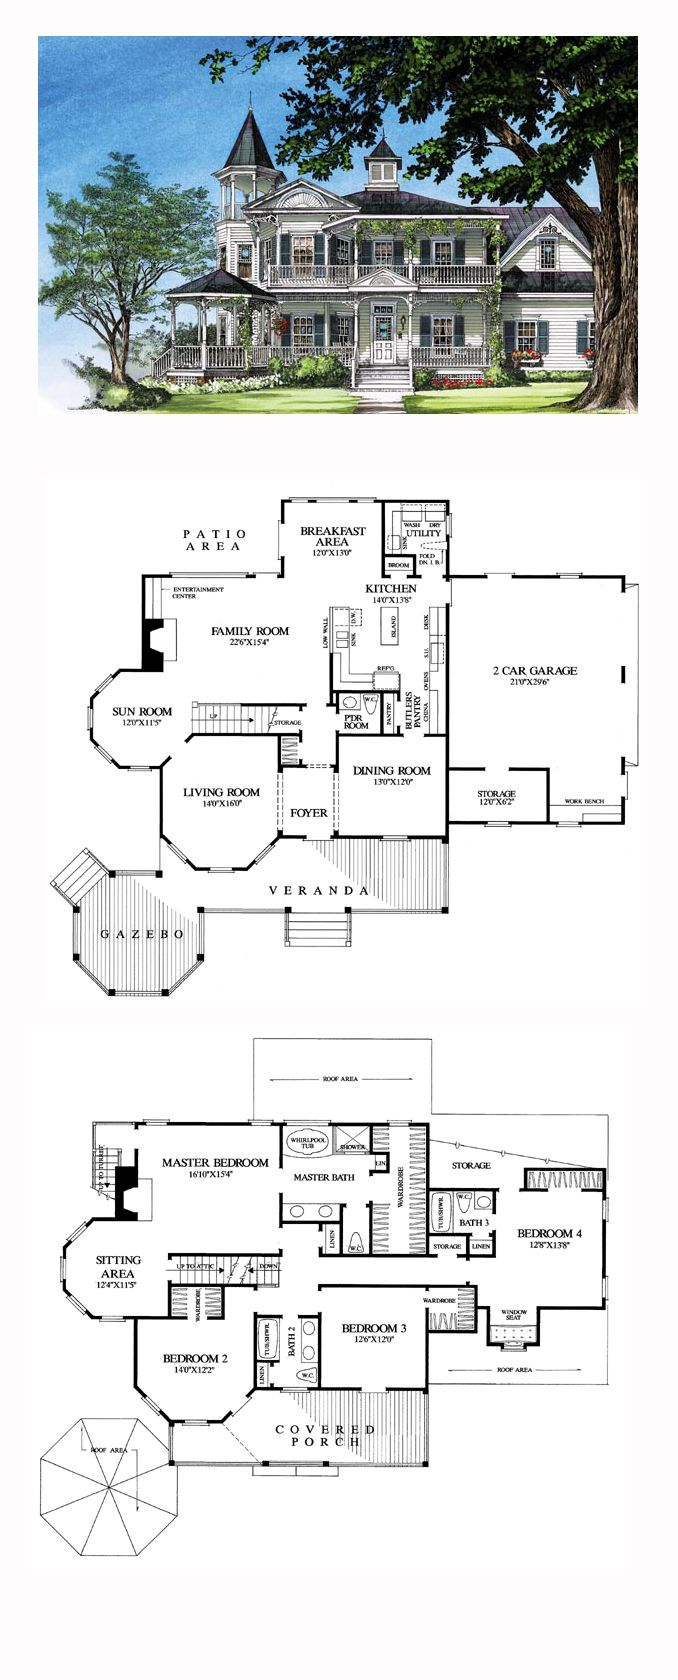 Victorian Style House Plan 86291 With 4 Bed 4 Bath 2 Car Garage Victorian House Plans Farmhouse Style House Plans House Blueprints